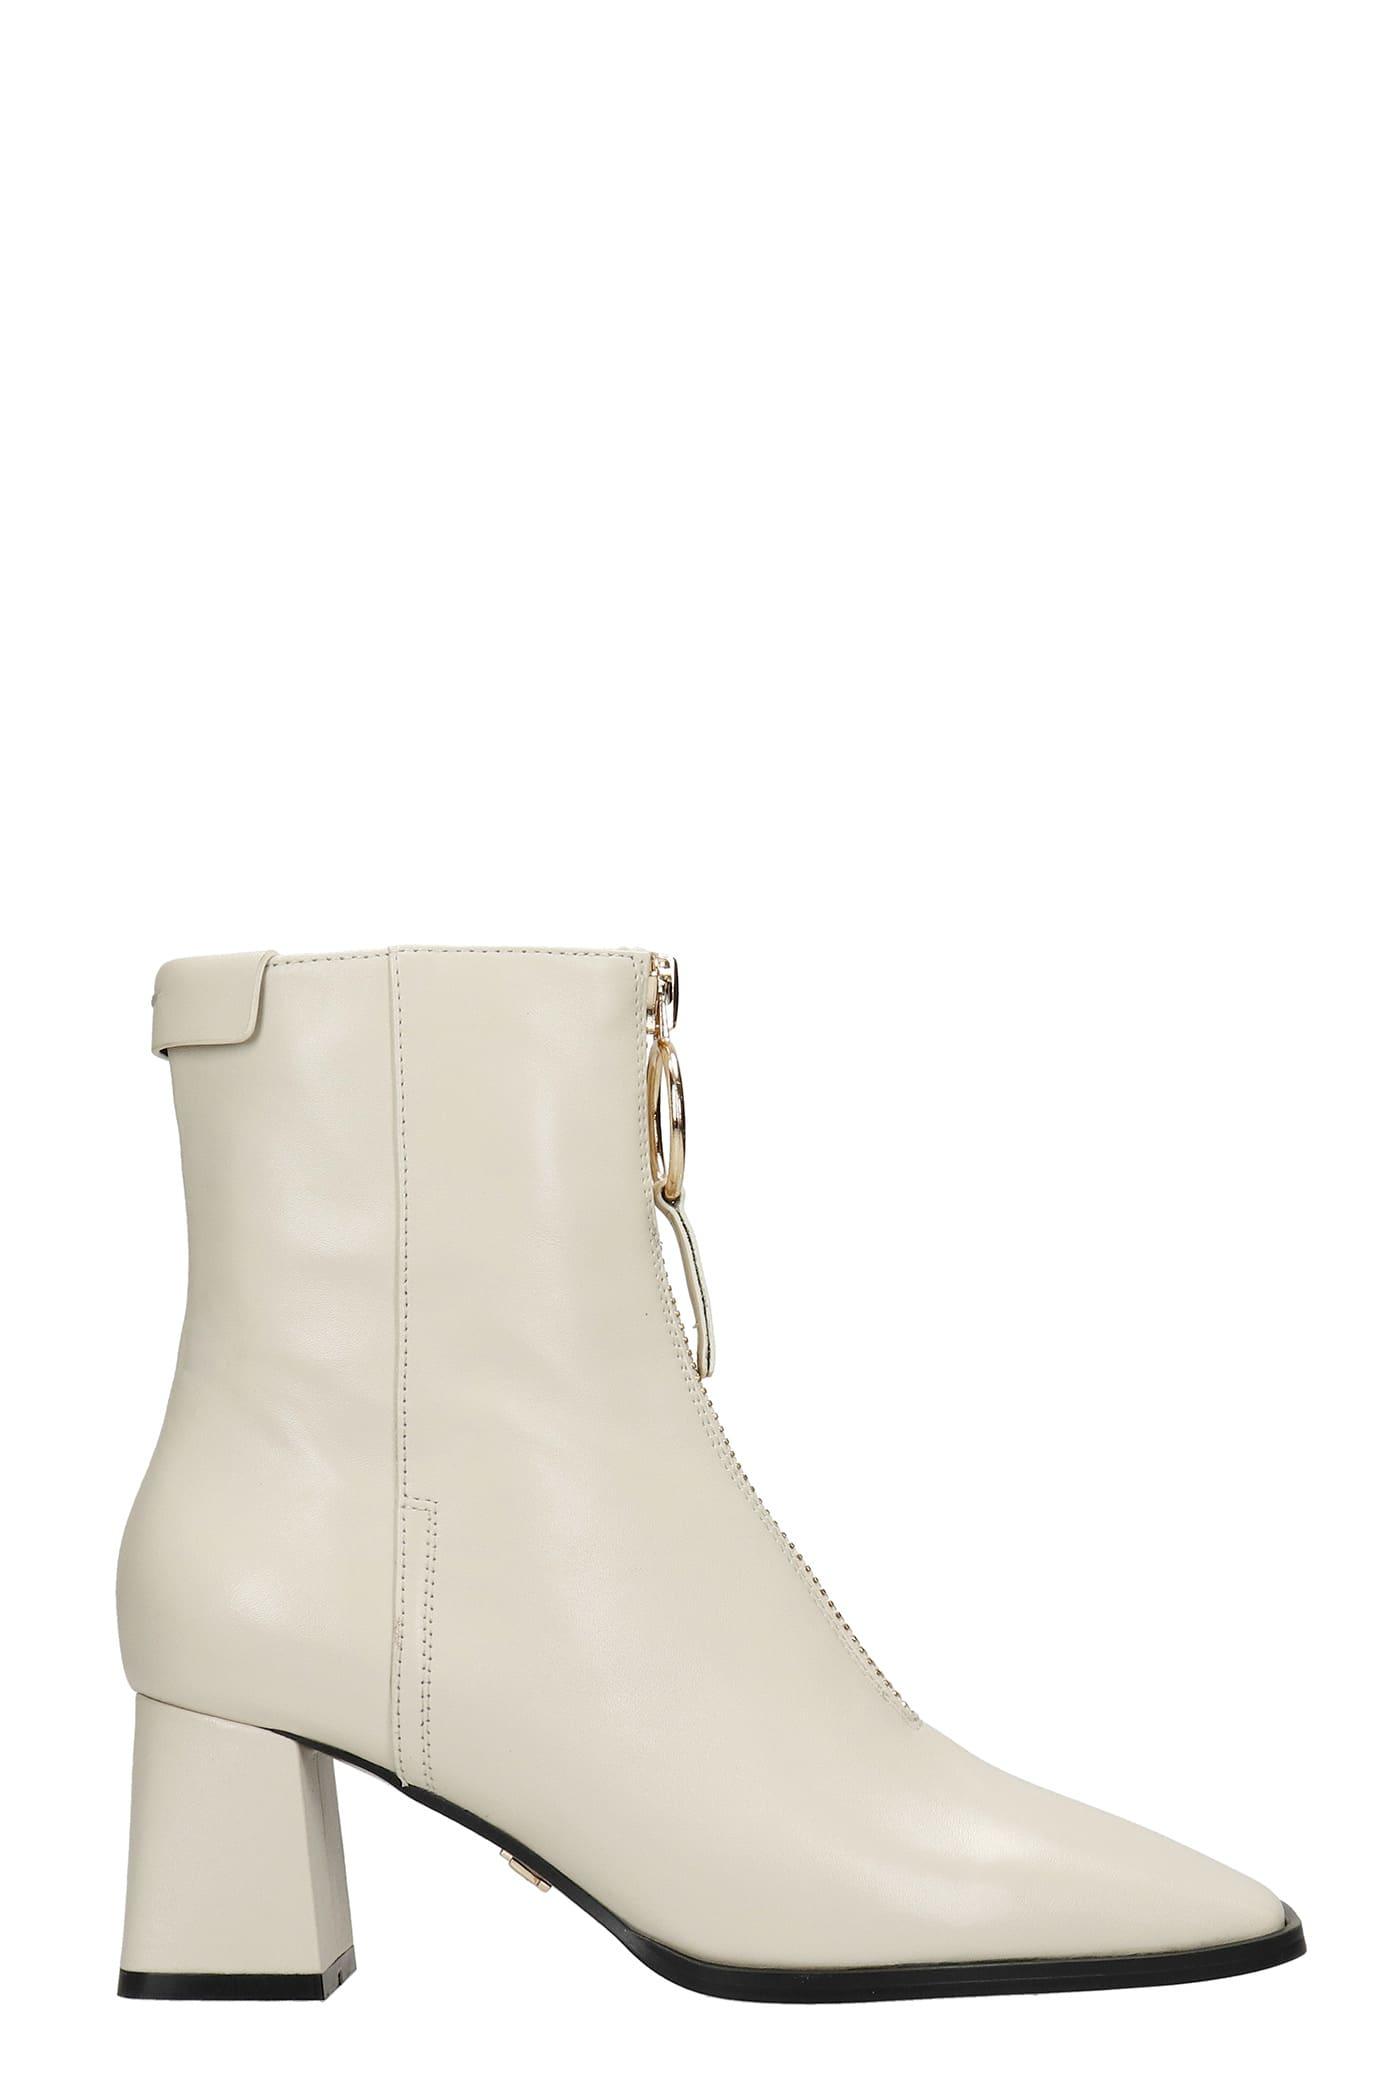 High Heels Ankle Boots In White Leather